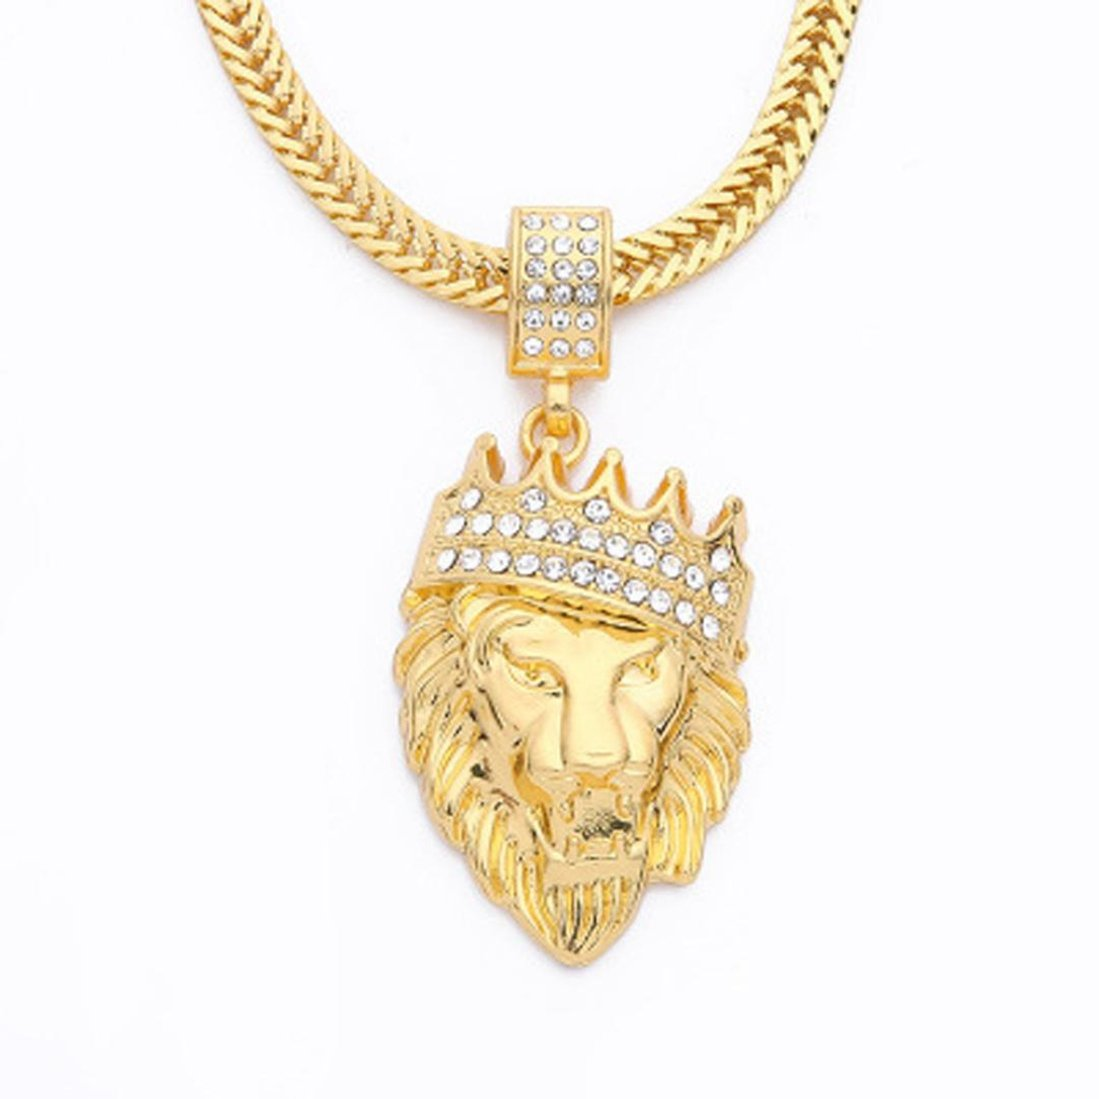 Saihui Mens Full Iced Out Rhinestone Lion Tag Pendant Cuban Chain Hip Hop Necklace (Gold) pmp03192567